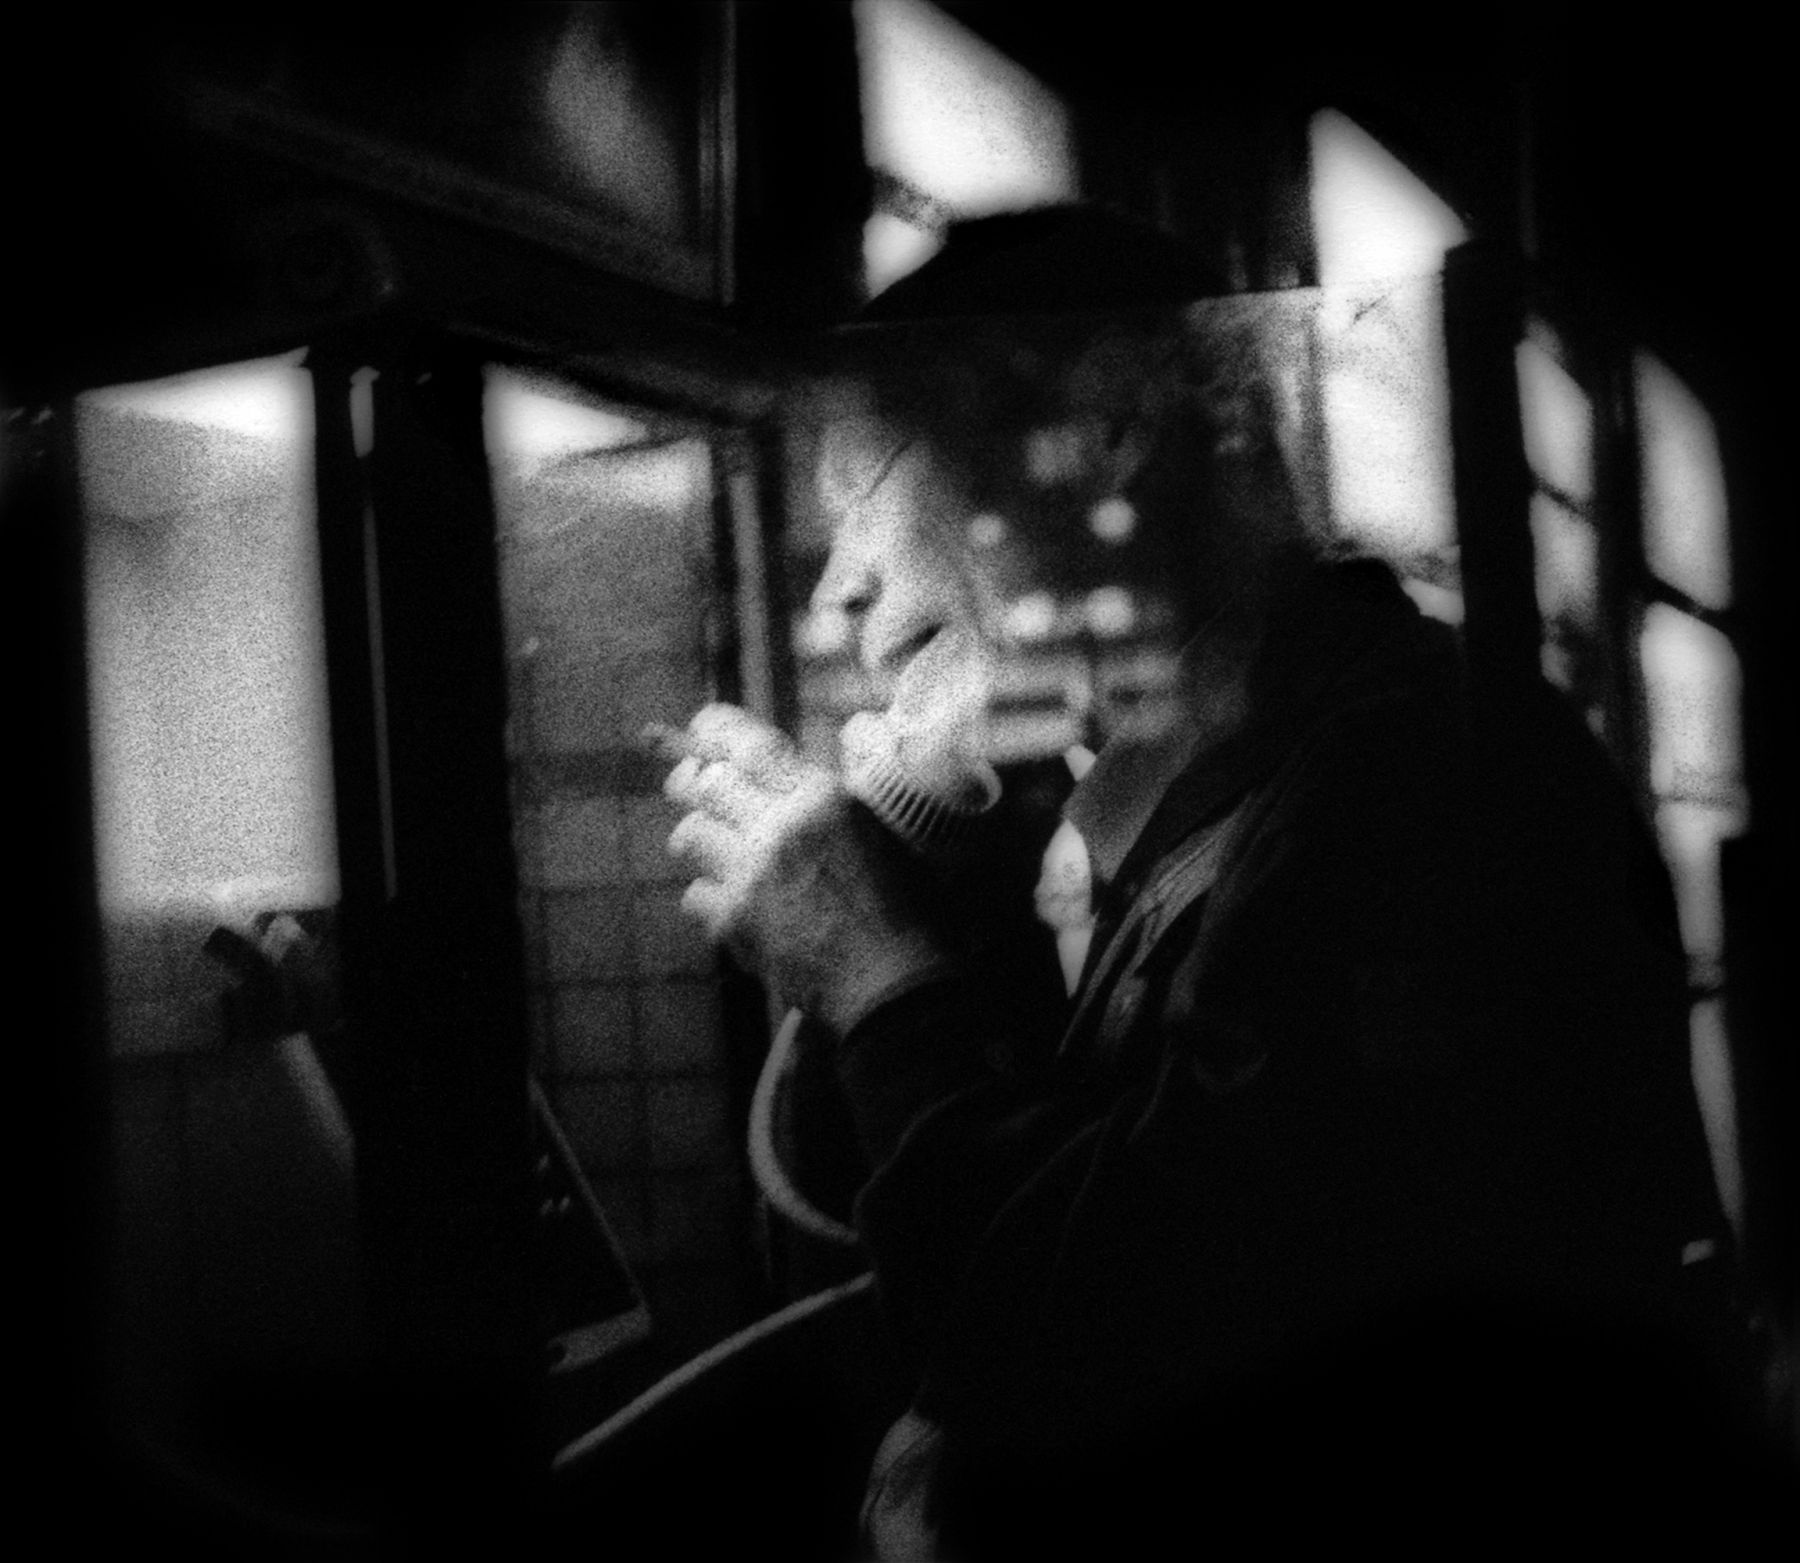 James Whitlow Delano, Mangaland, Night phone call and a smoke, Hatagaya, Tokyo, Japan, 2002, Sous Les Etoiles Gallery